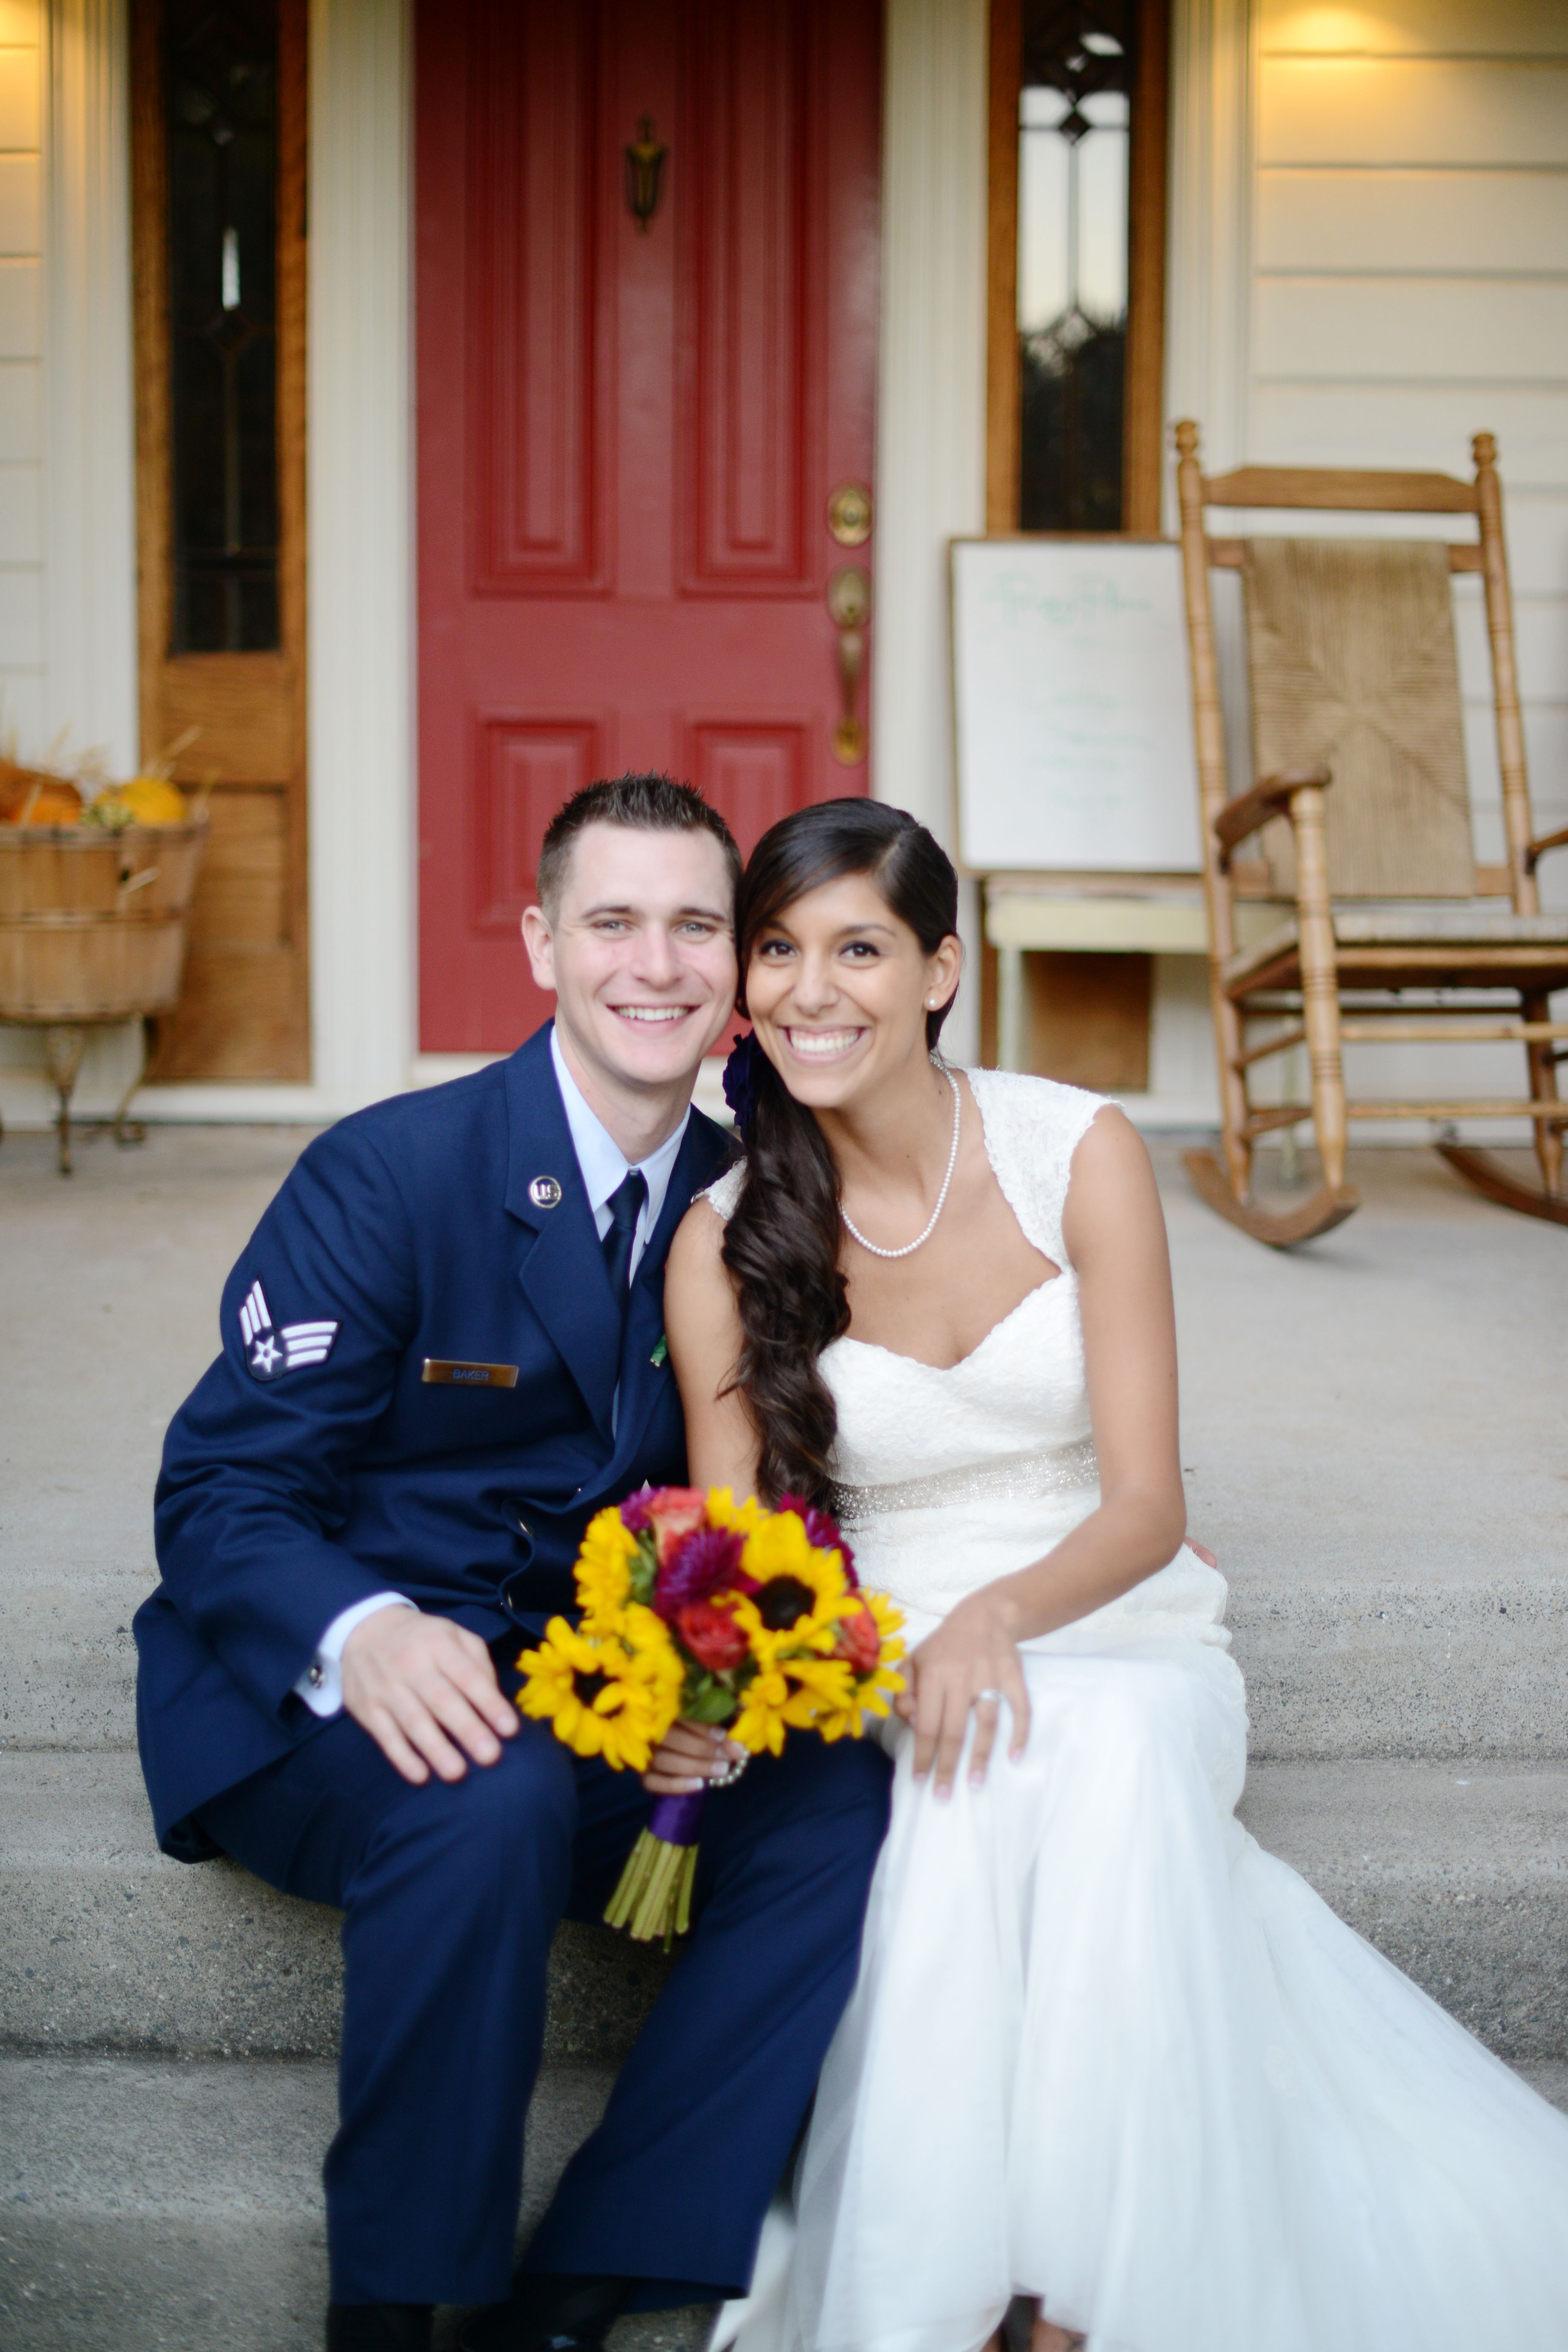 Air Force Military Wedding Military Wedding Wedding Wedding Dresses